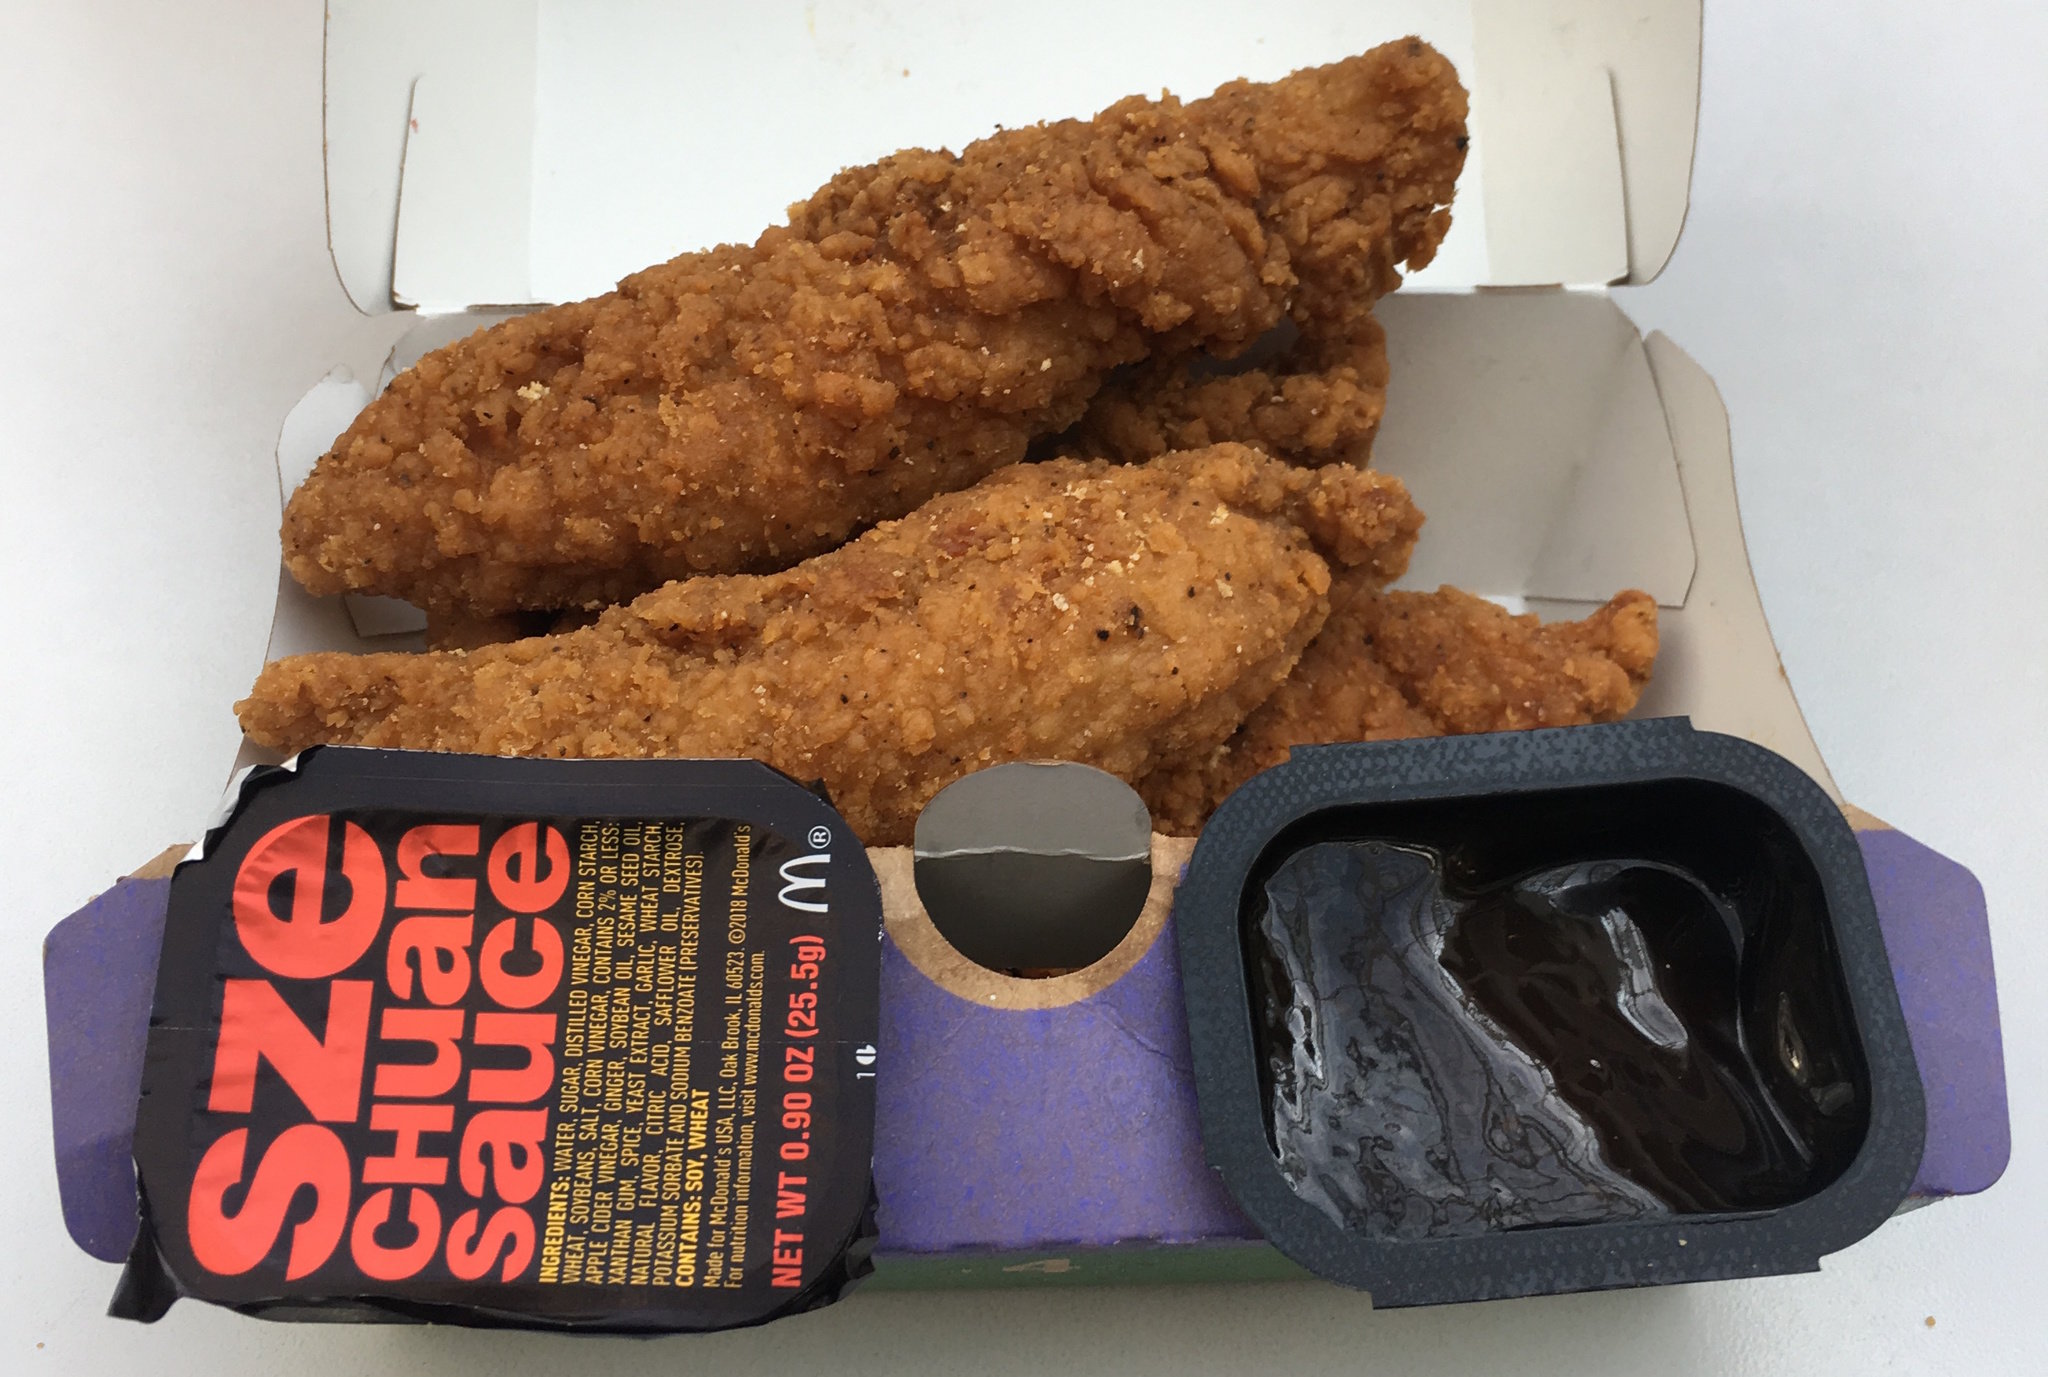 State I Tasted Szechuan Sauce From So You Have I Tasted Szechuan Sauce From So You Szechuan Sauce Recipe Reddit Szechuan Sauce Recipe Chinese nice food Szechuan Sauce Recipe